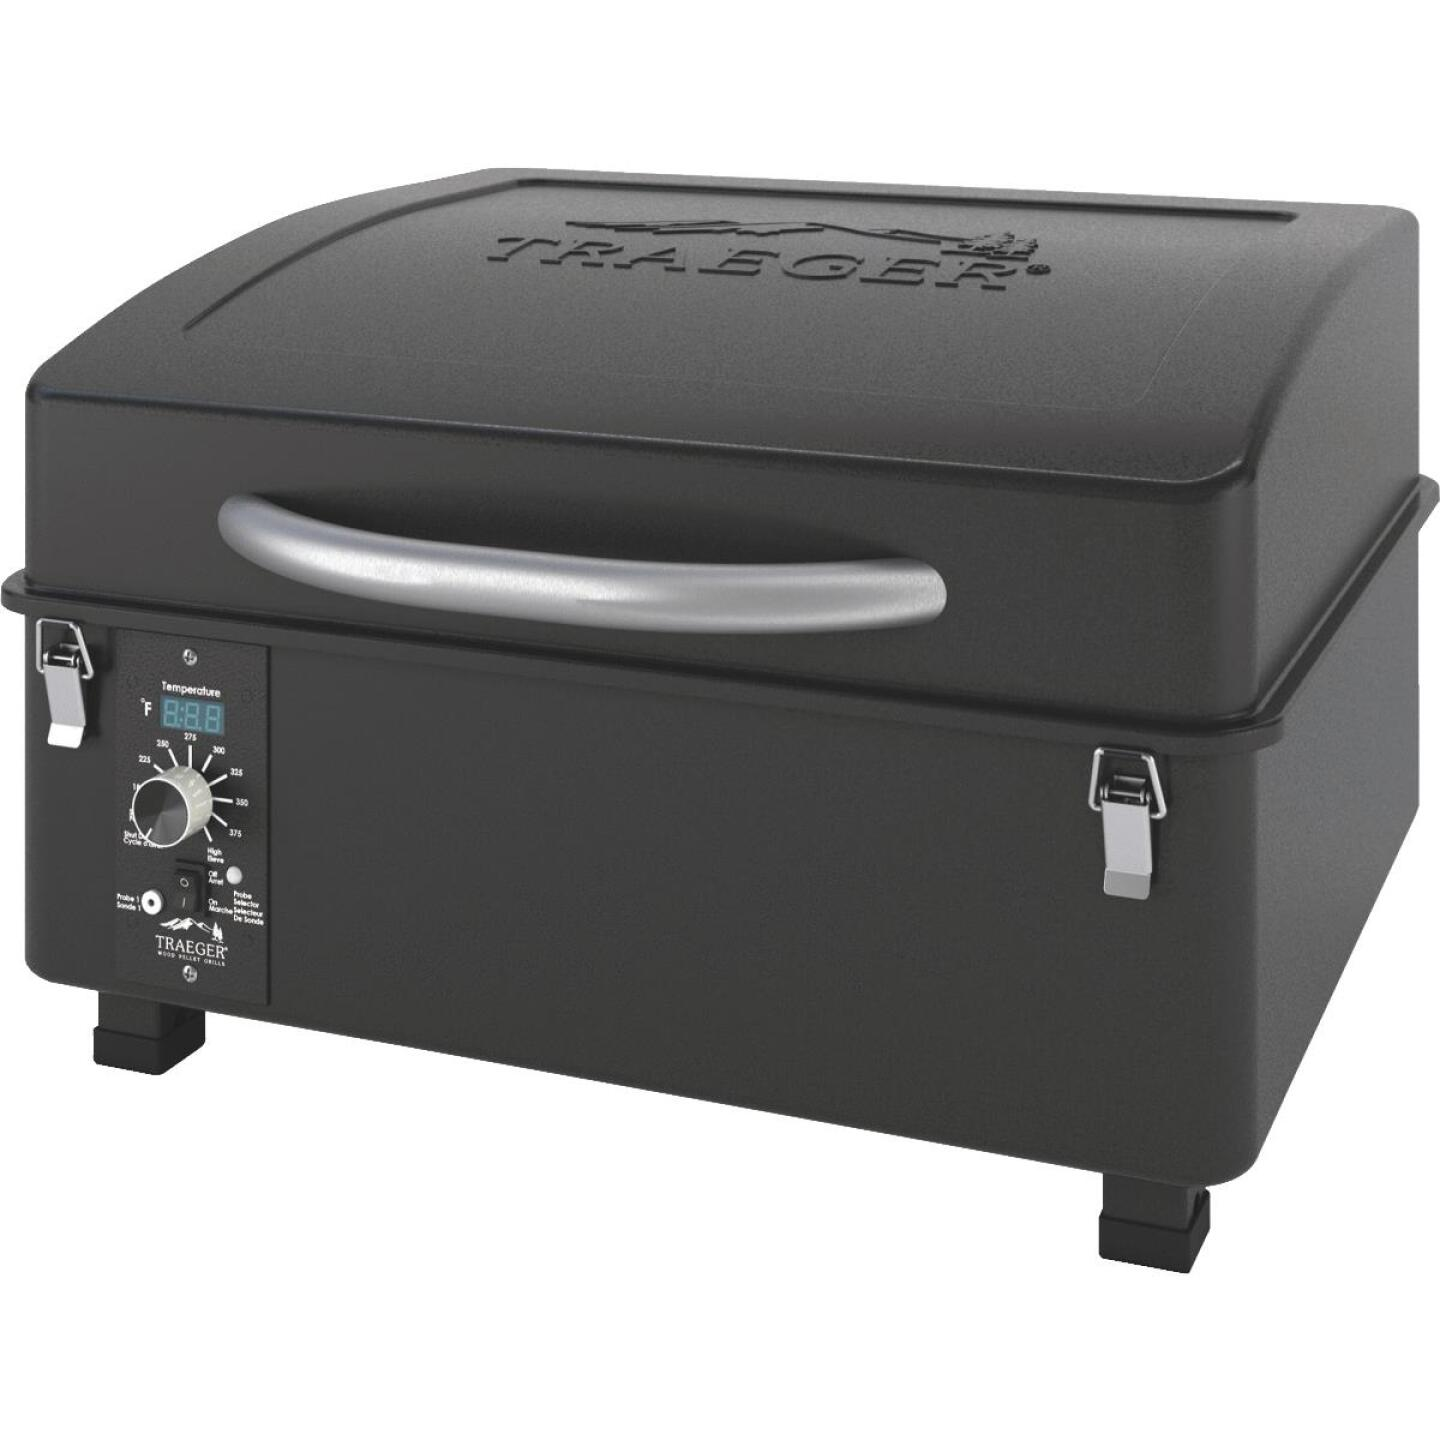 Traeger Scout Black 16,000-BTU 184 Sq. In. Portable Wood Pellet Grill Image 1